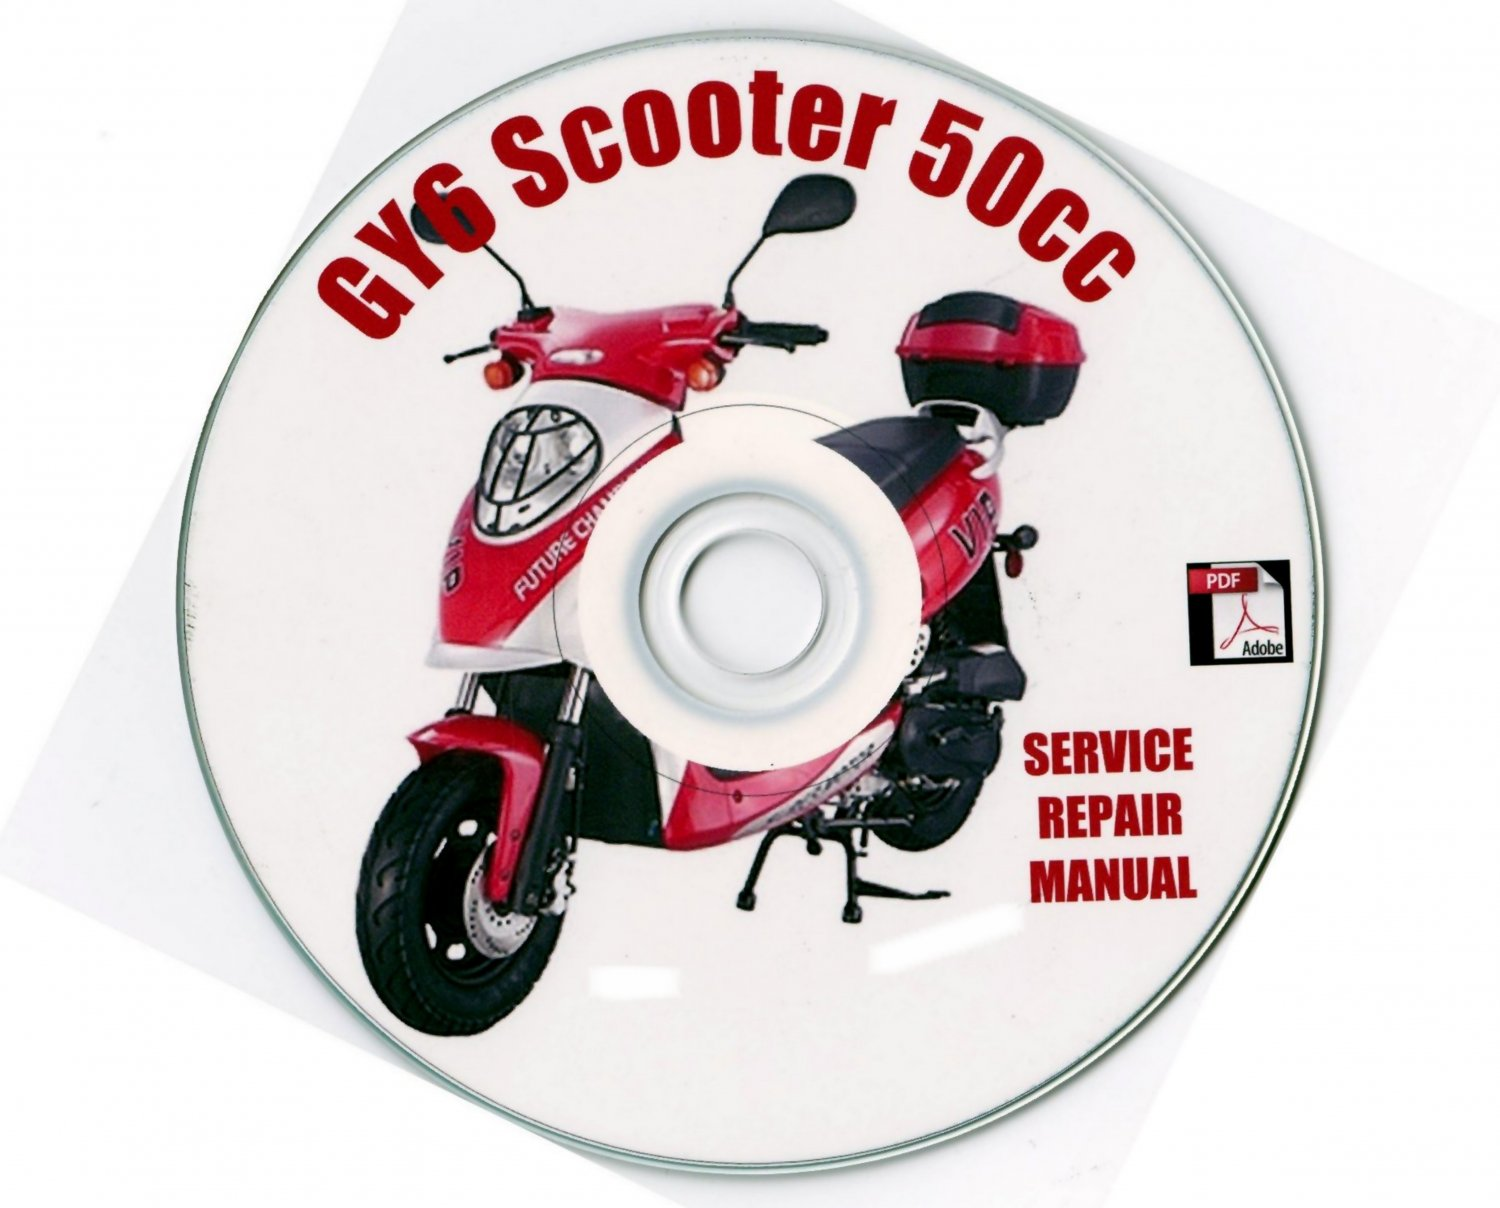 hight resolution of  verucci wiring diagram wiring diagram c70 1982 wiring harness gy6 50 50cc scooter service repair manual